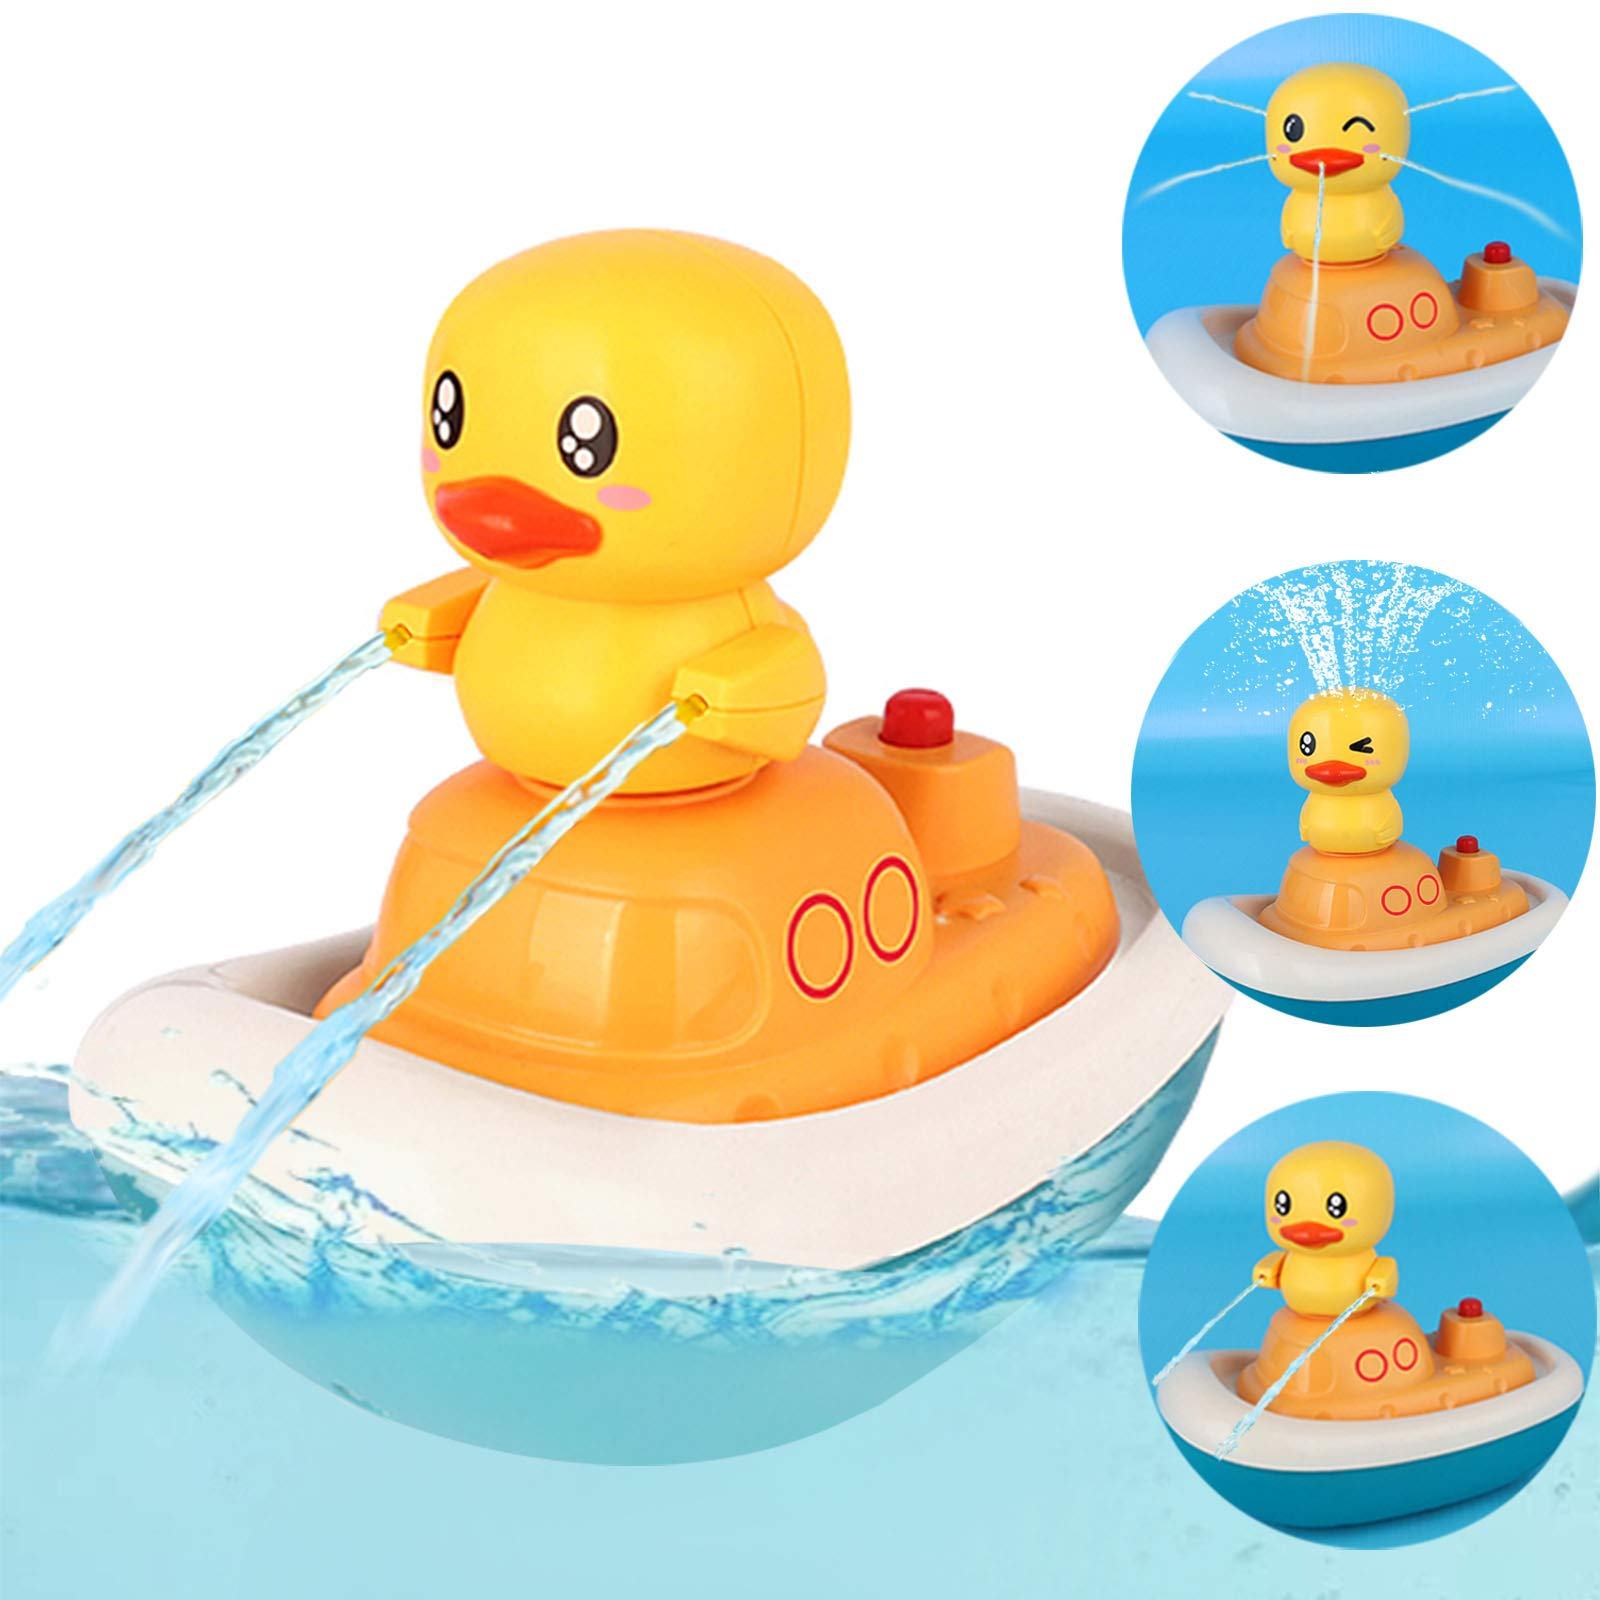 Electric Water Spray Toys-Rotate Boat with 3 Fountain Methods Ducks